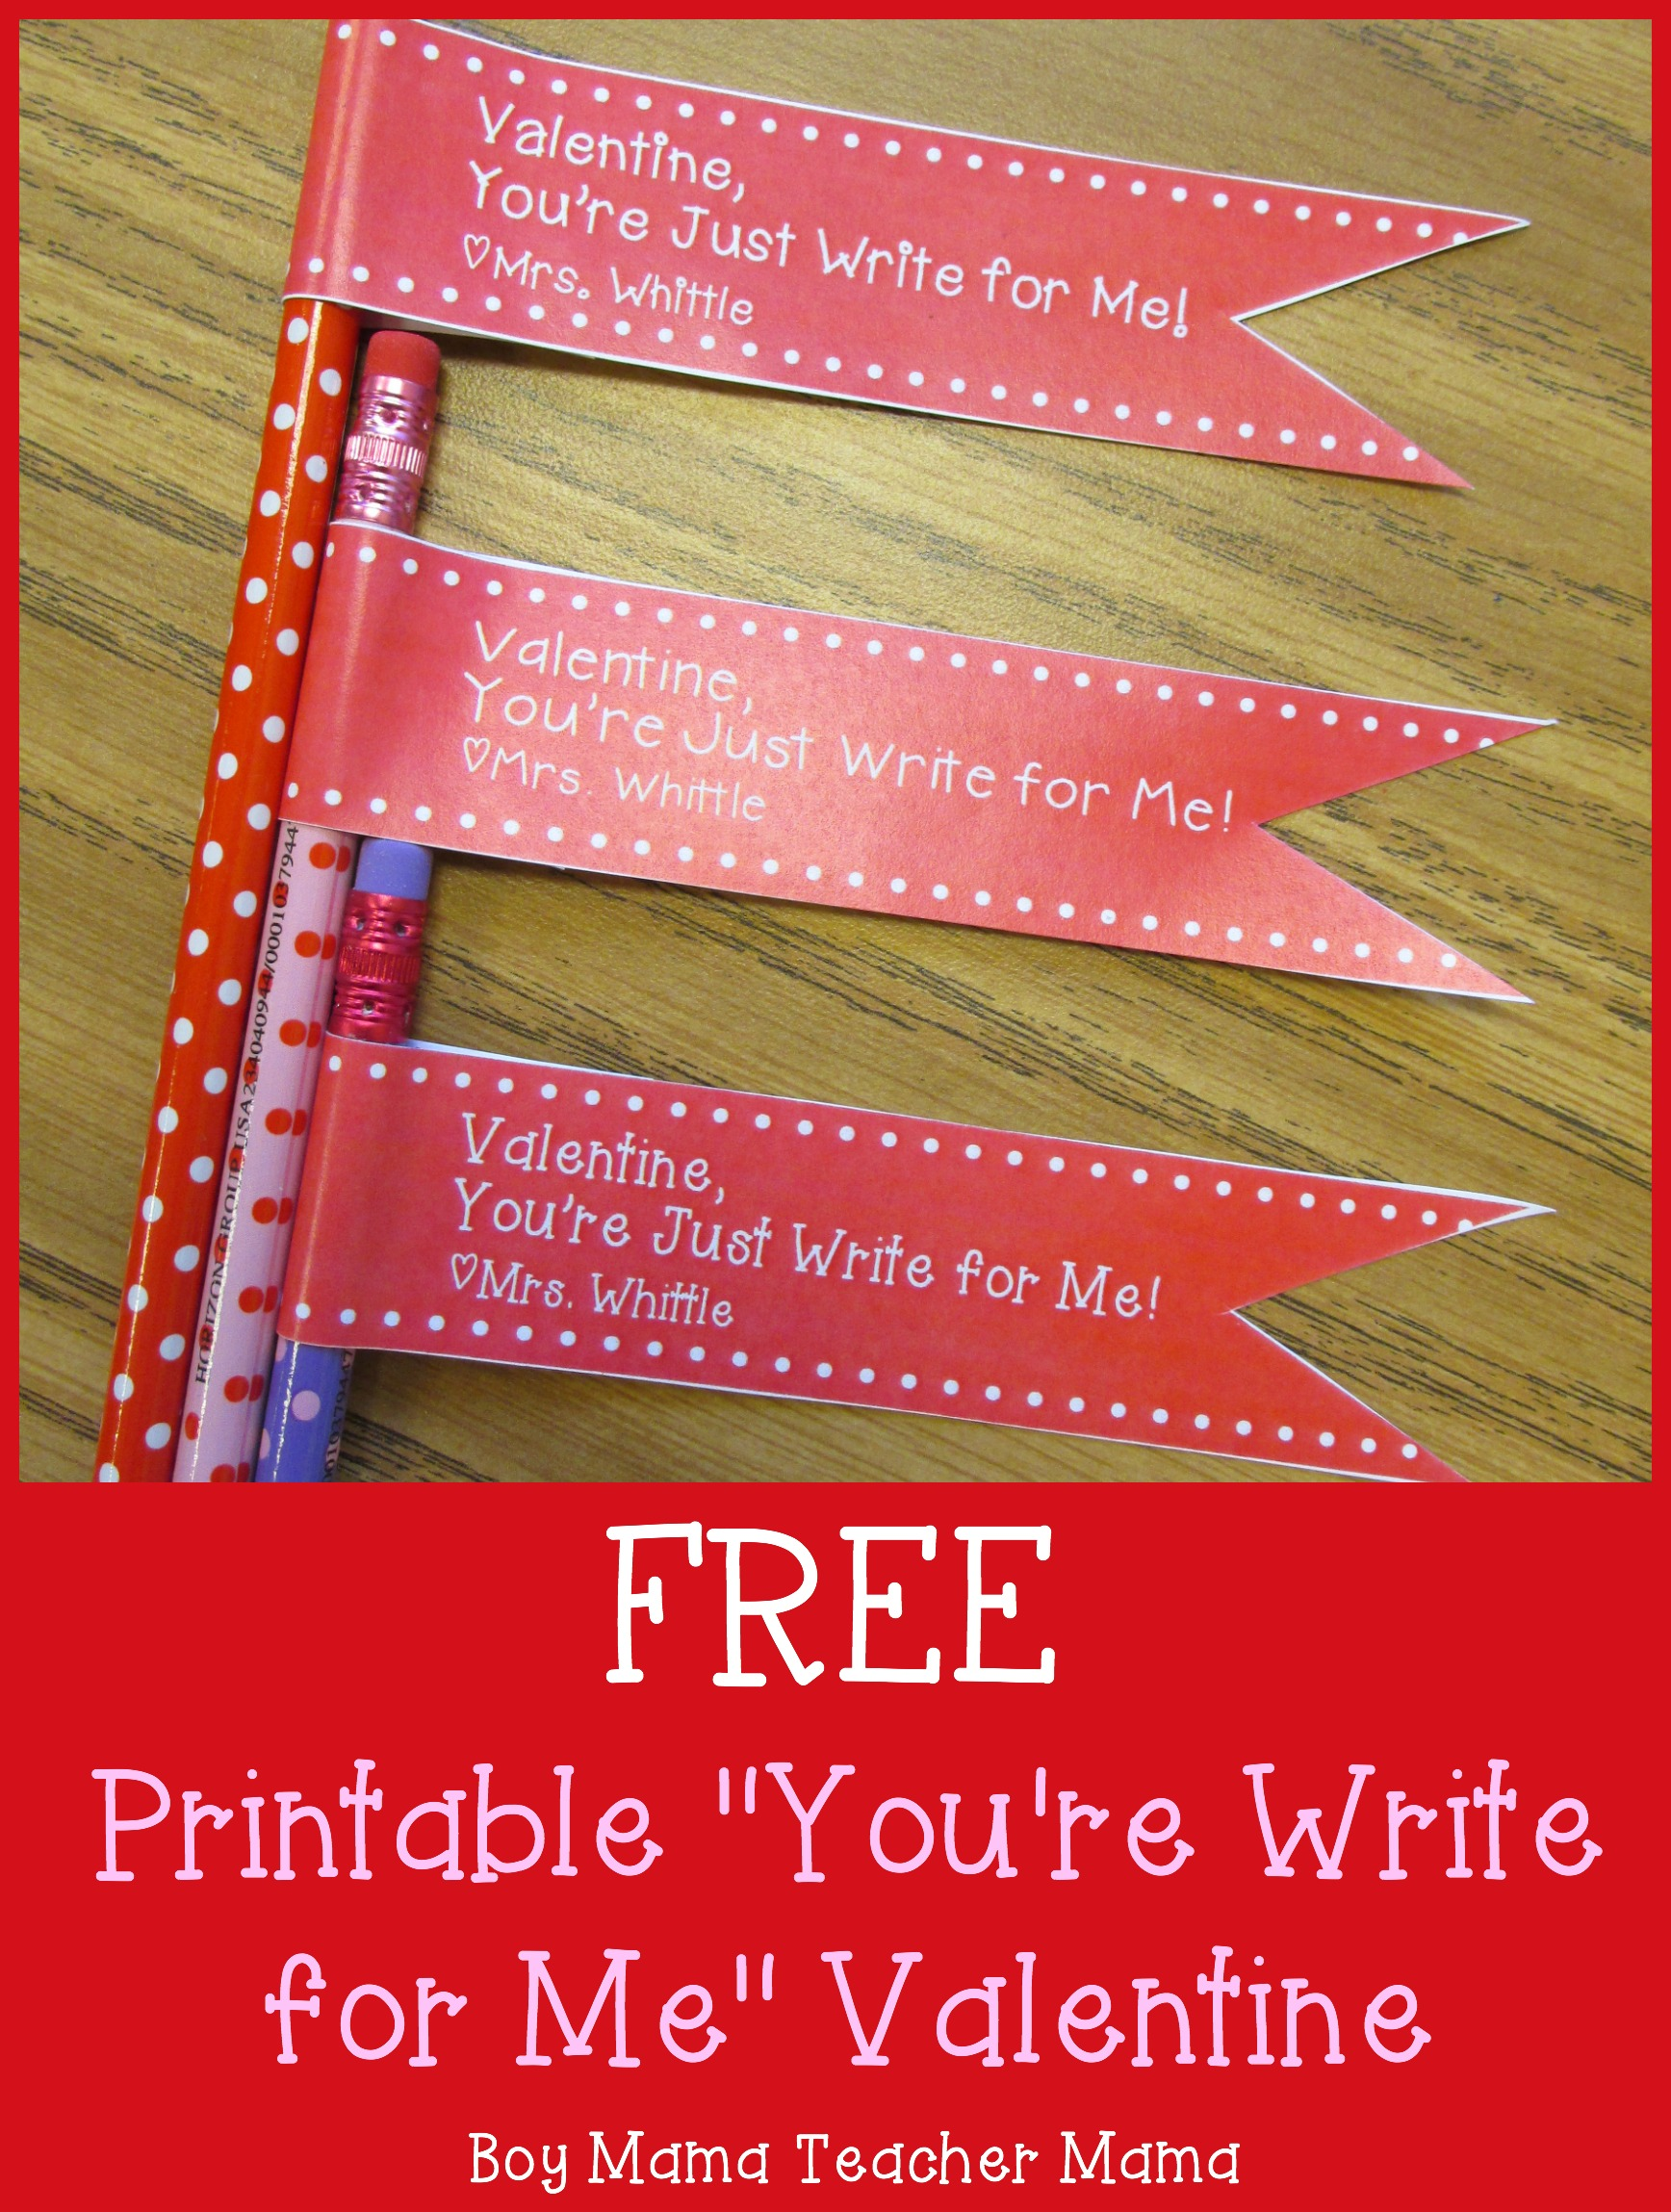 picture relating to Teacher Valentine Printable called Trainer Mama: Cost-free Printable Youre Generate for Me Valentines